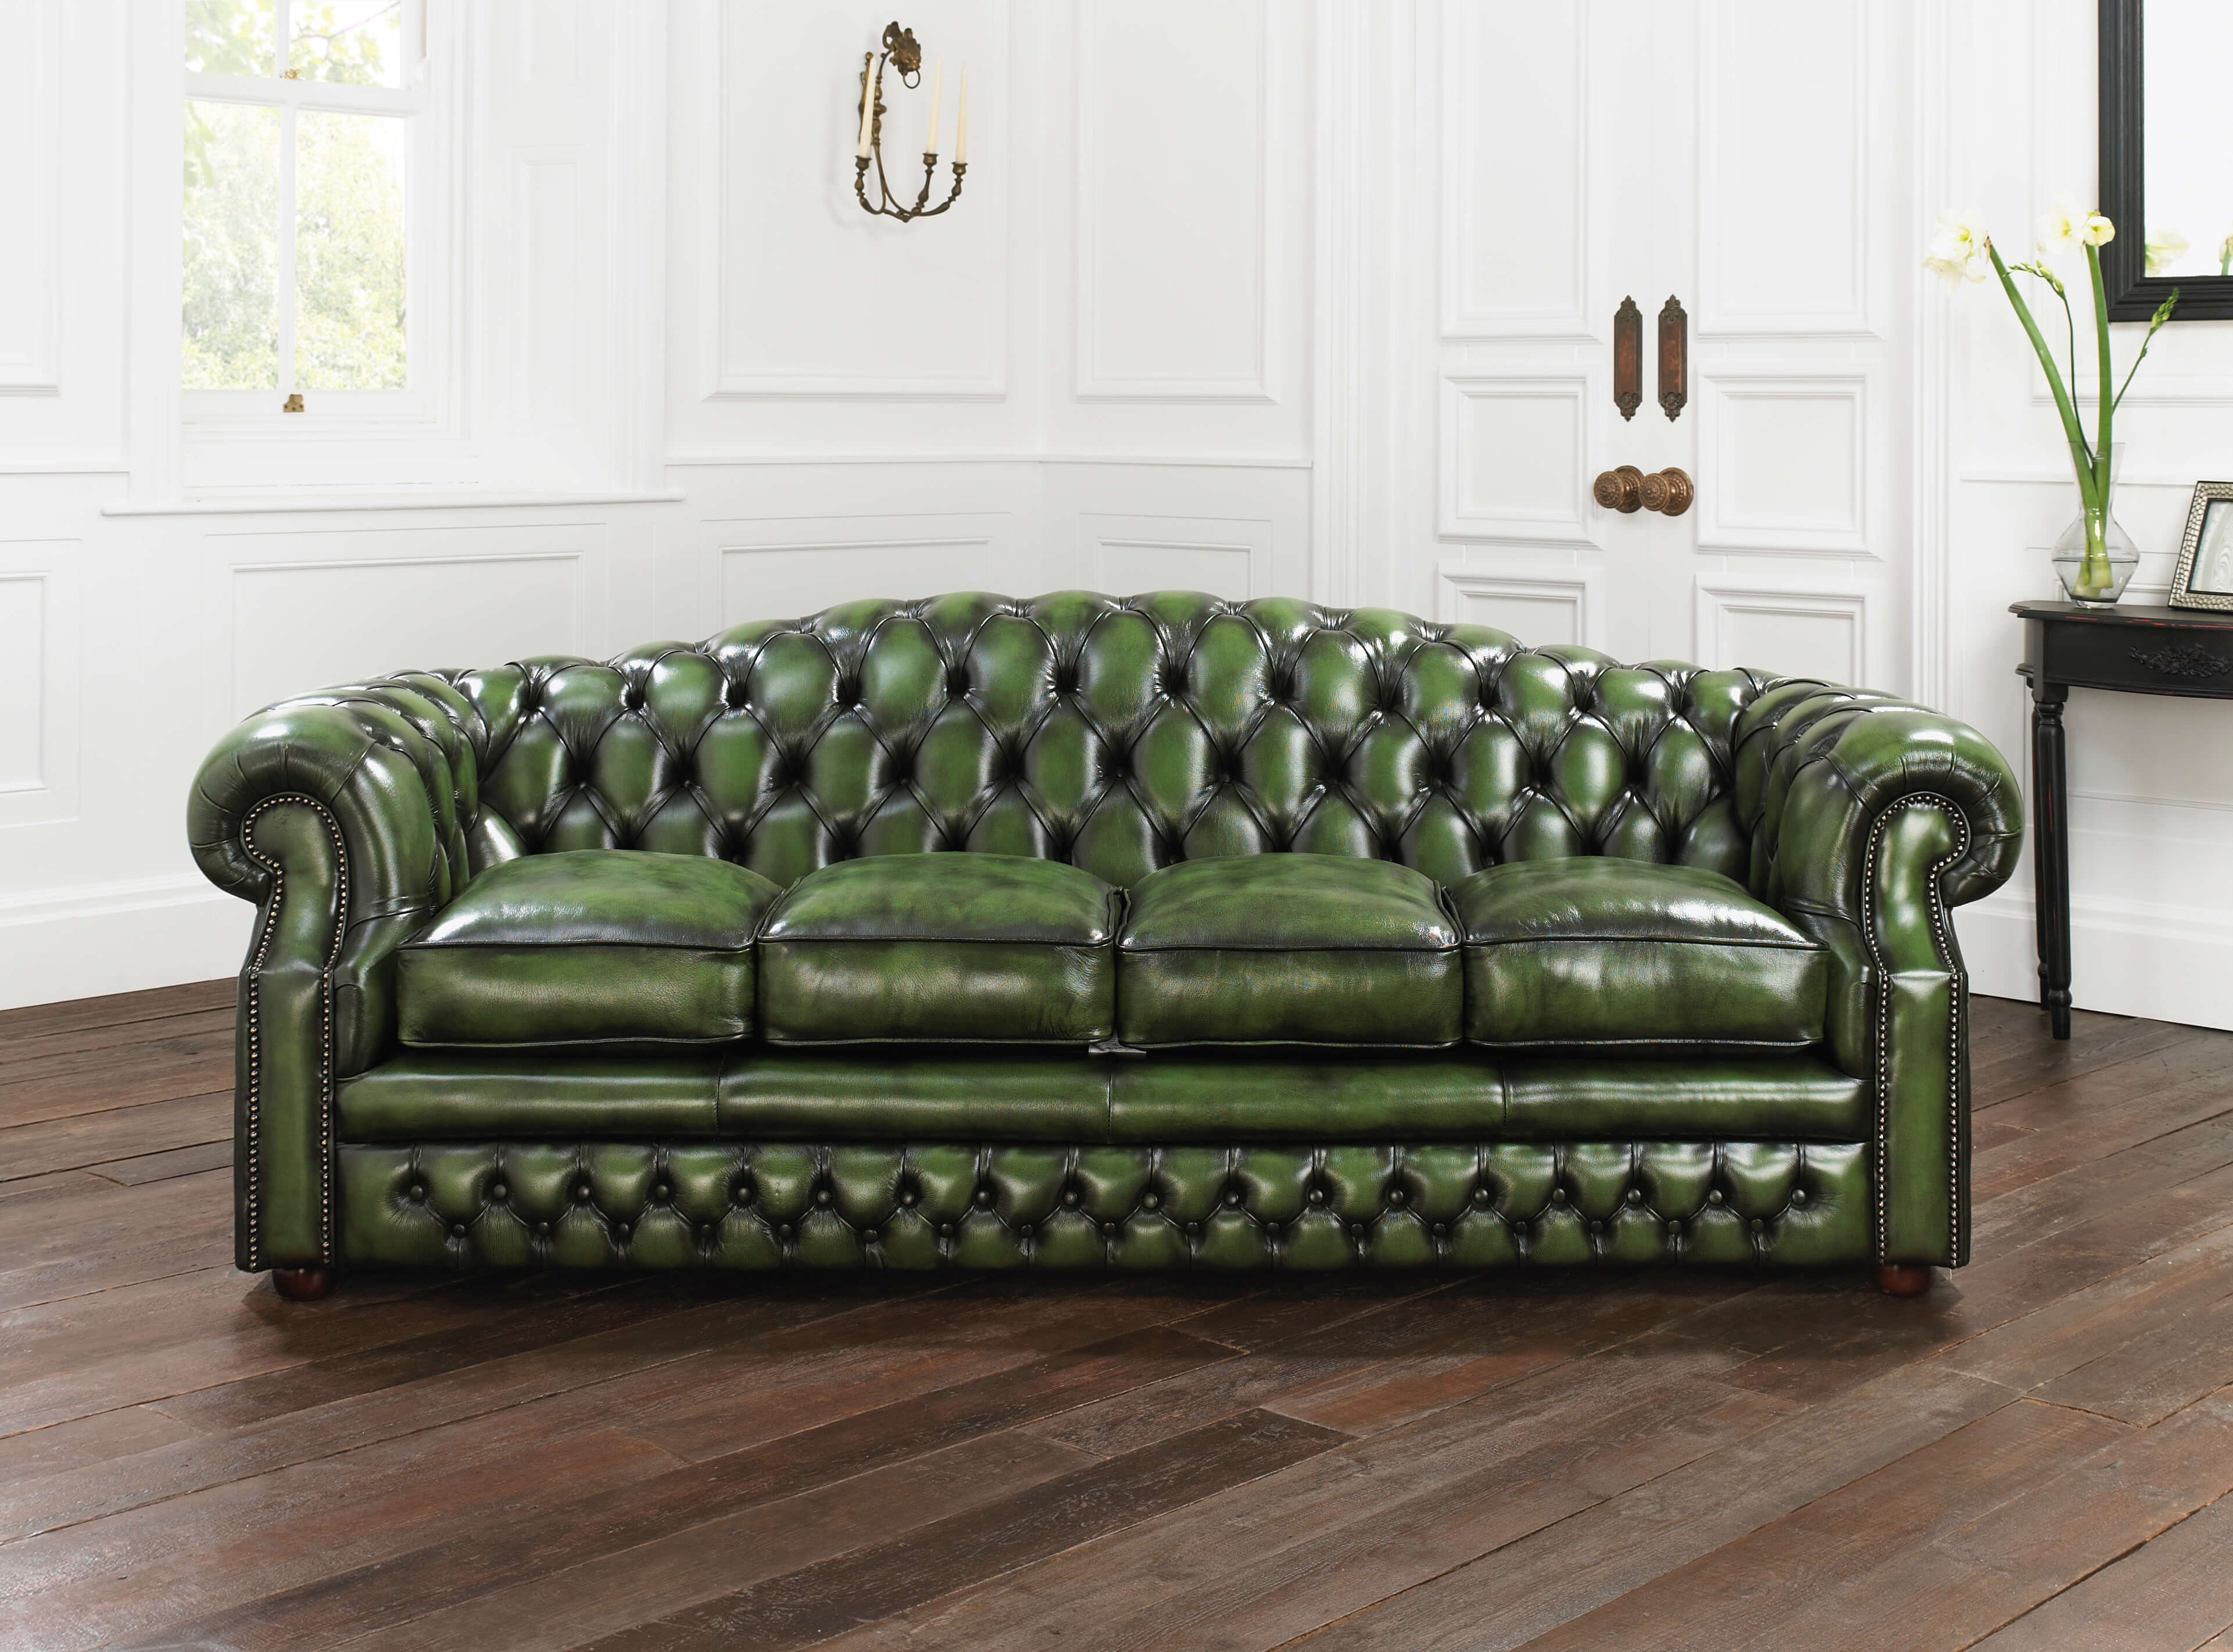 Canapé Chesterfield Buckingham